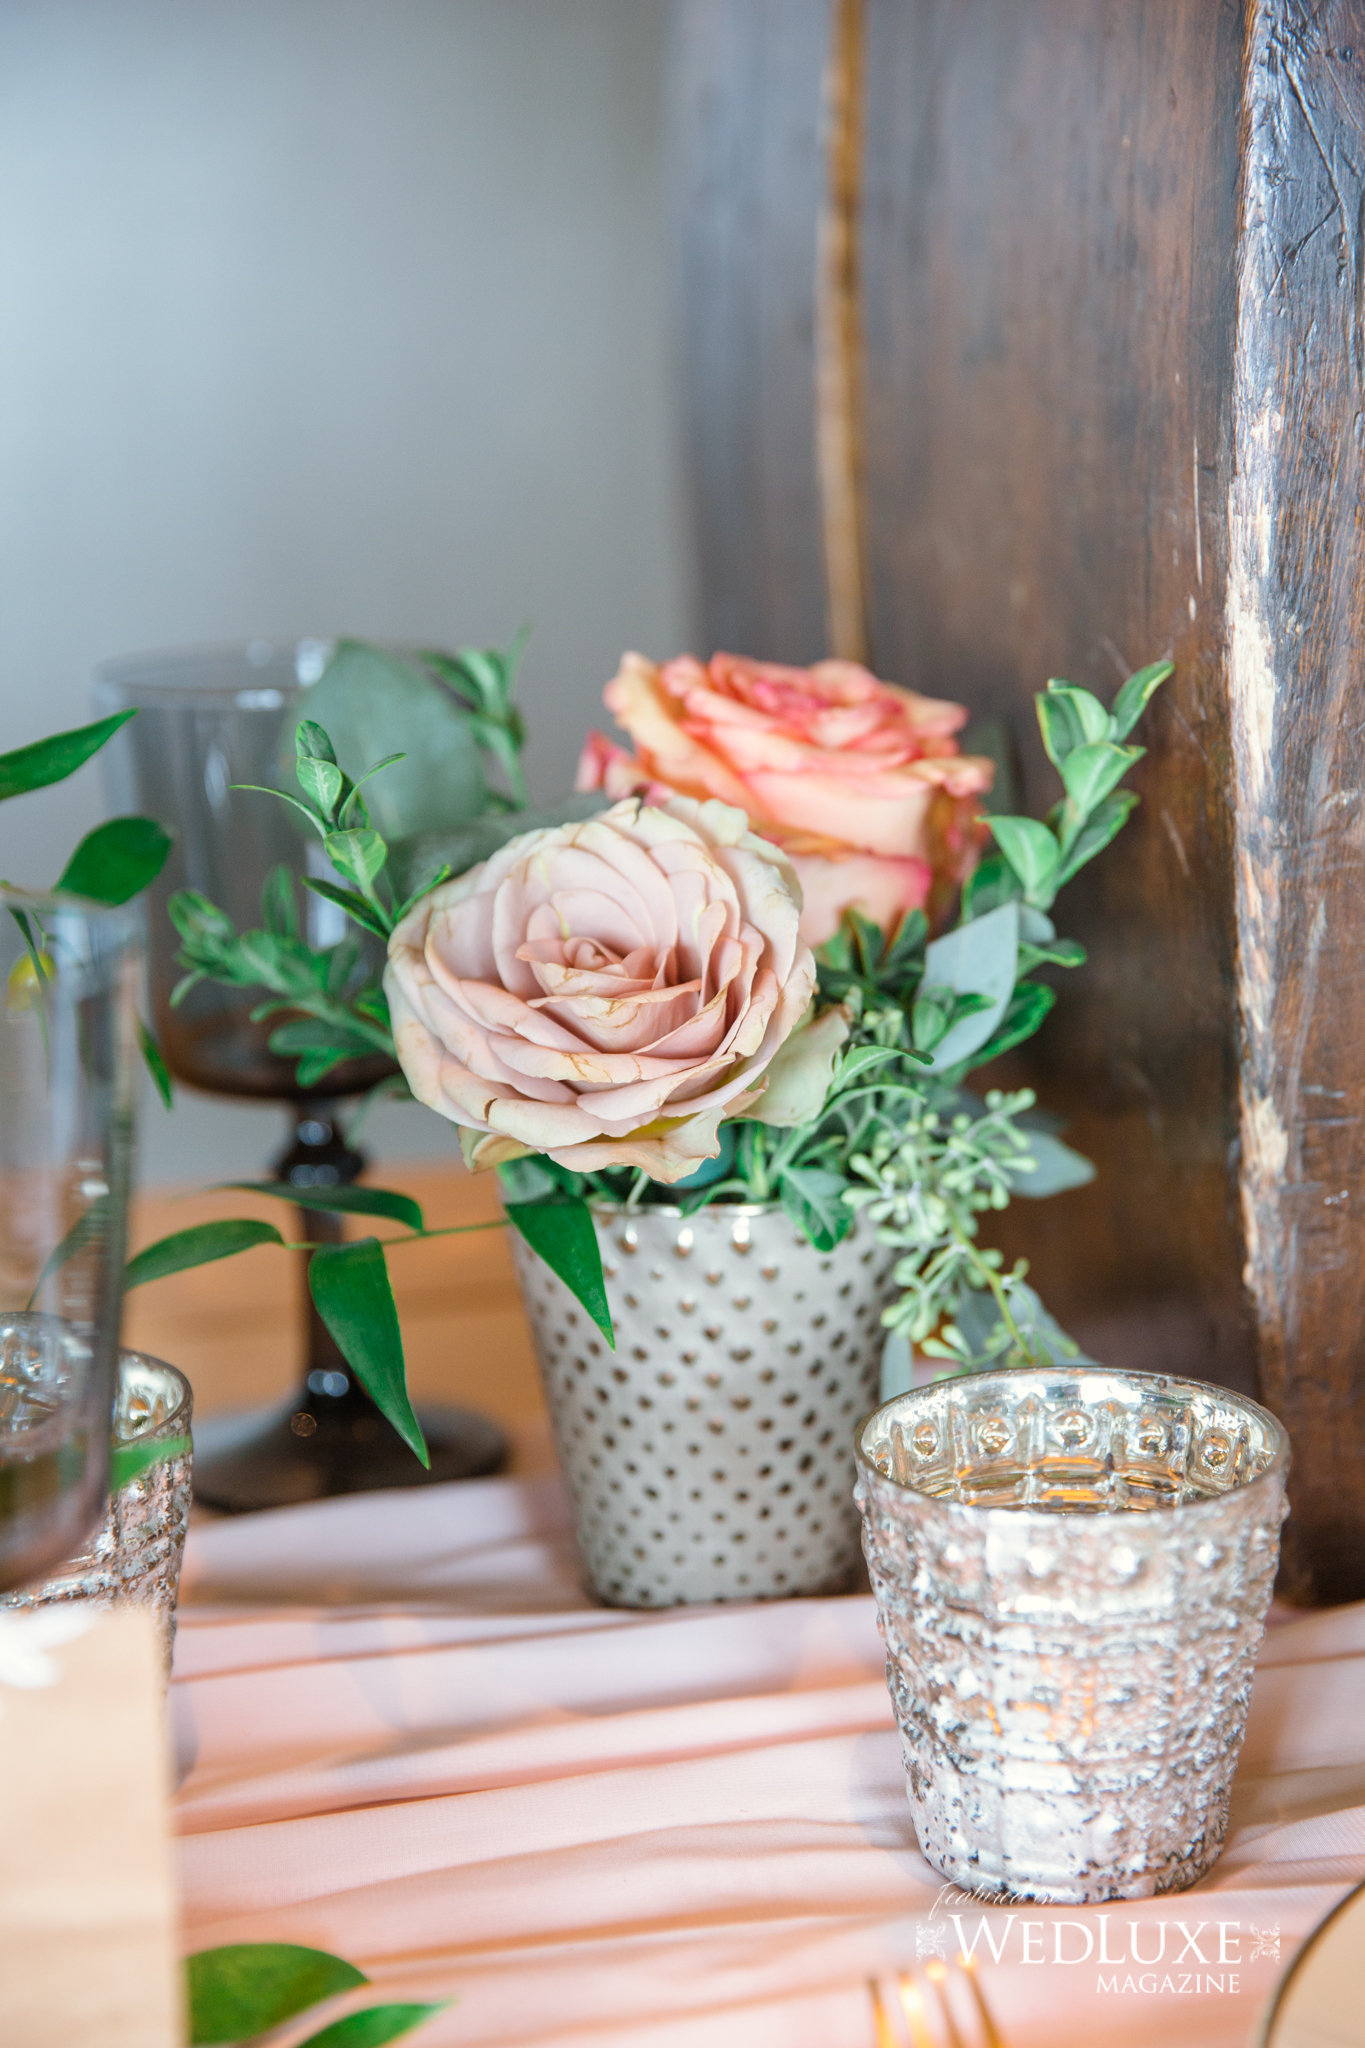 Styled Wedluxe Magazine Rustic Retreat quicksand rose votive